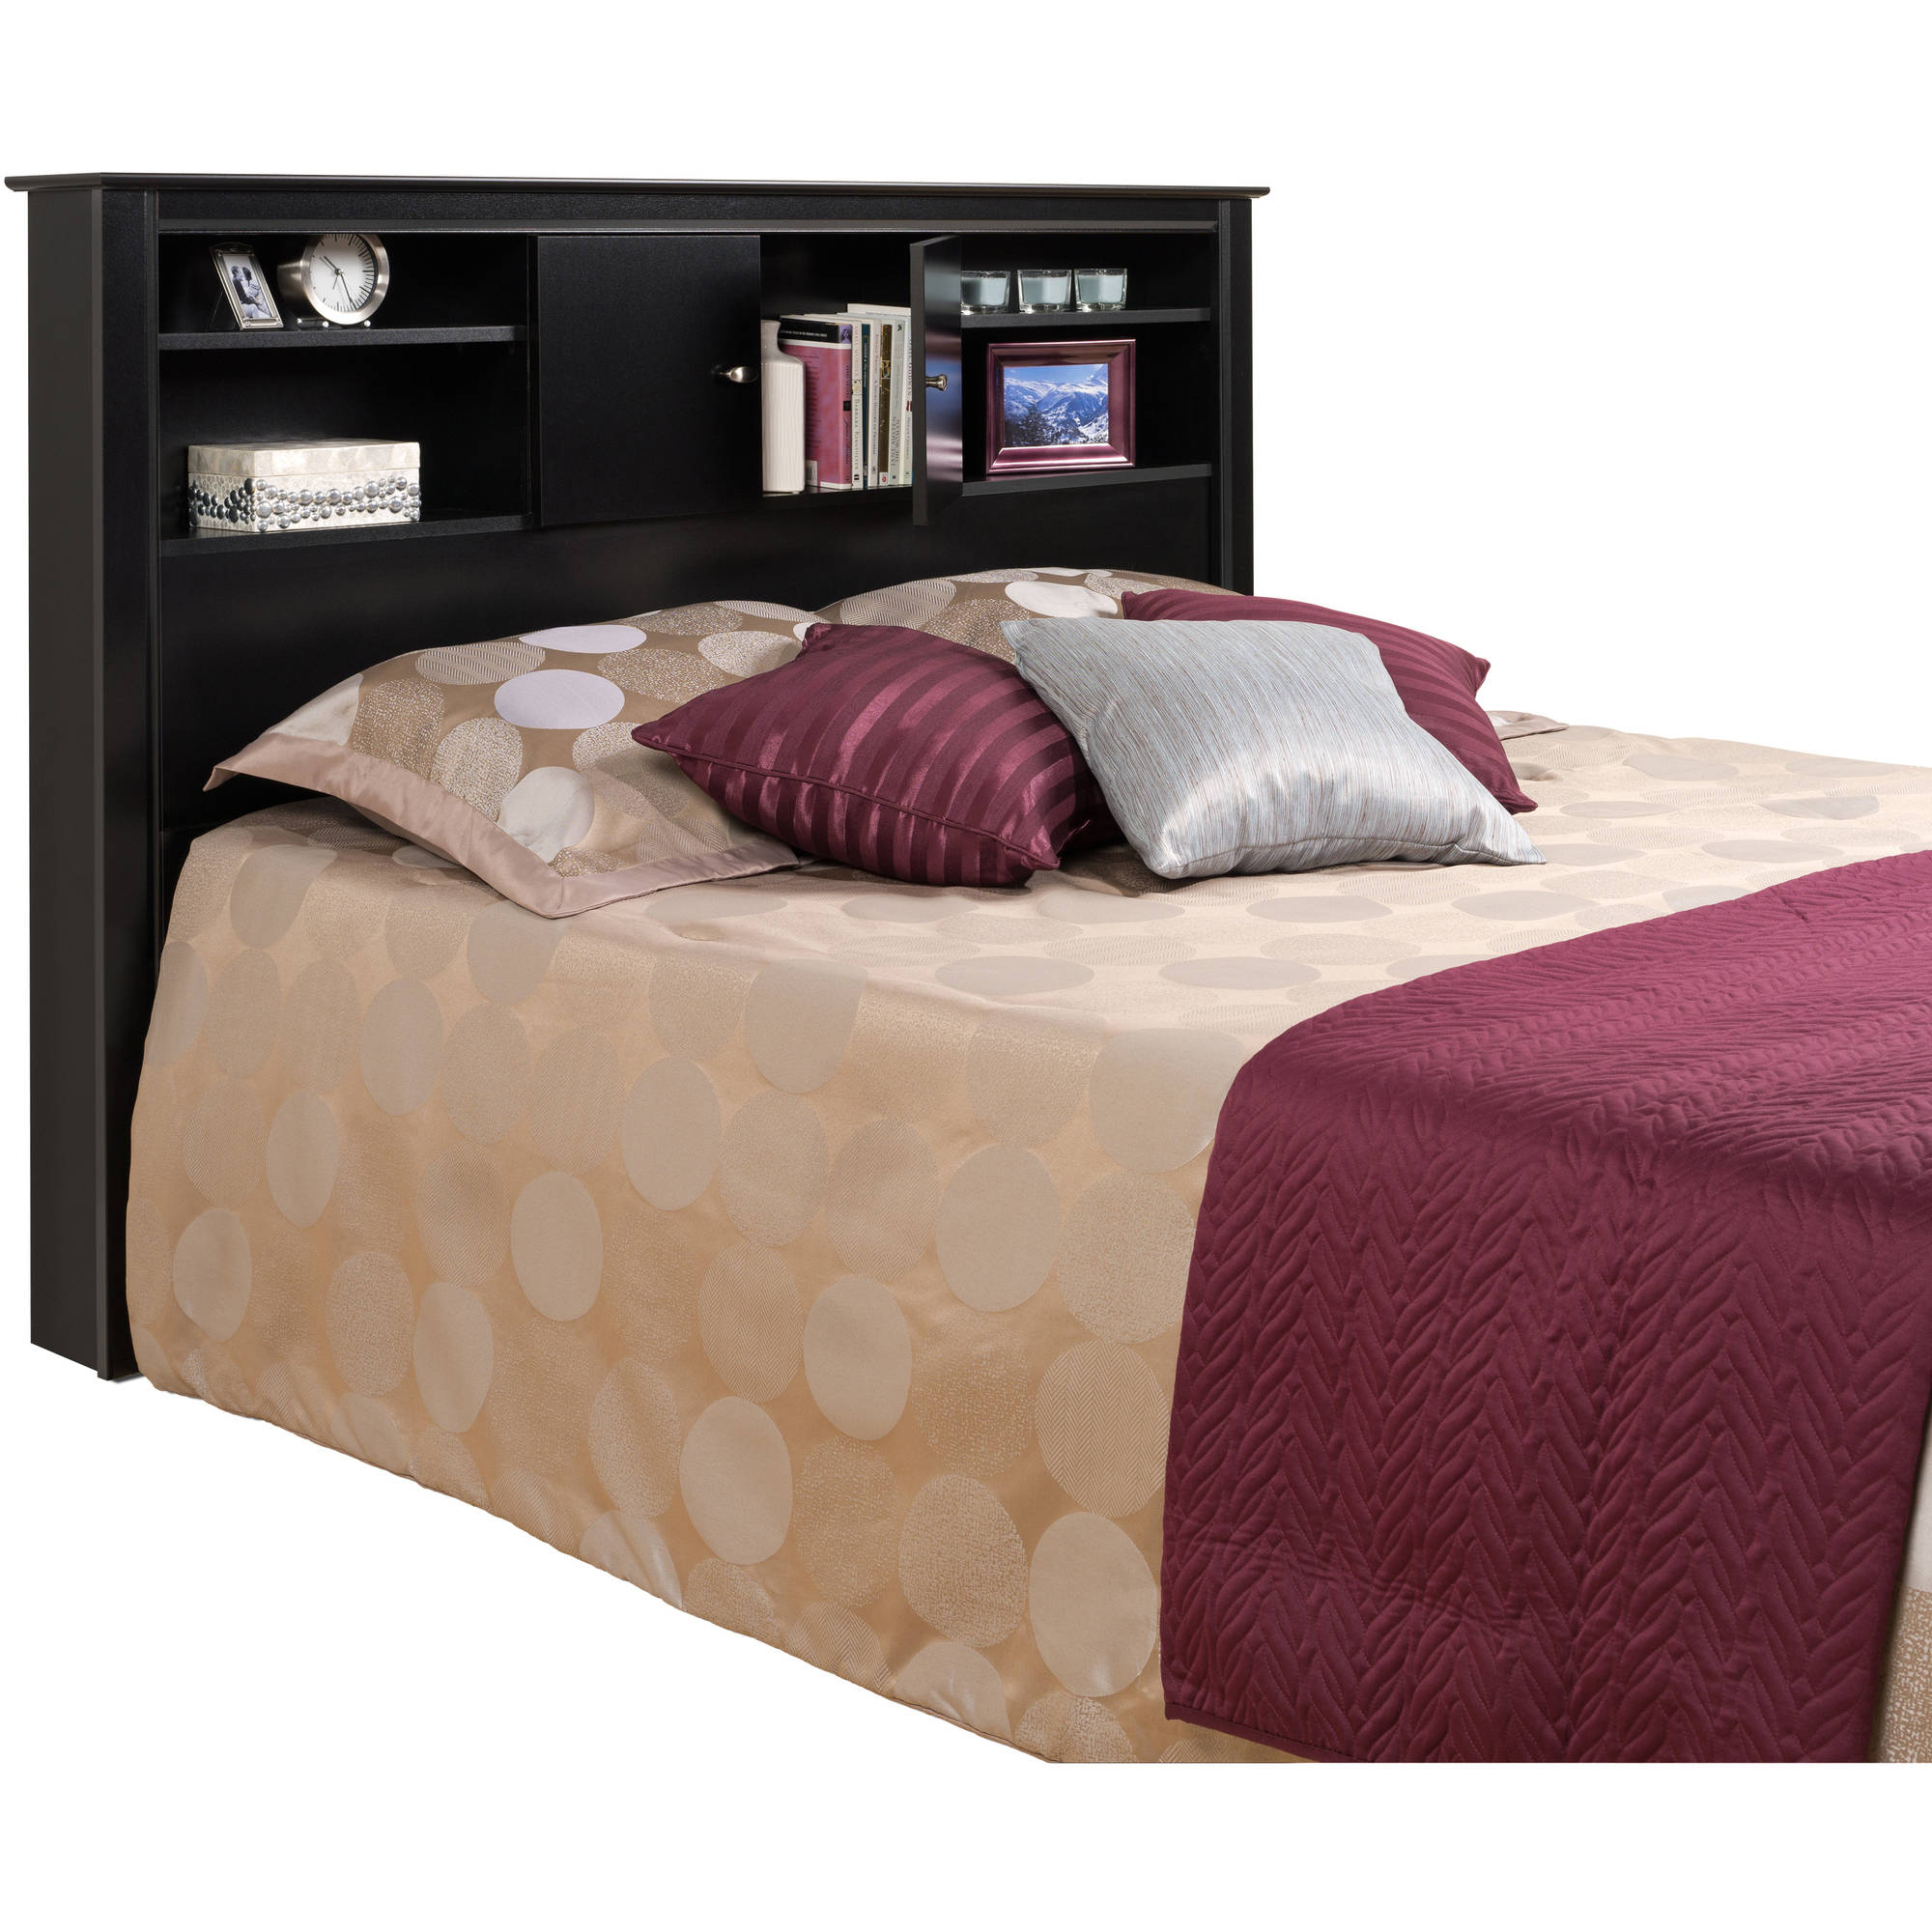 Prepac Black Kallisto Bookcase Headboard with Doors - Walmart.com